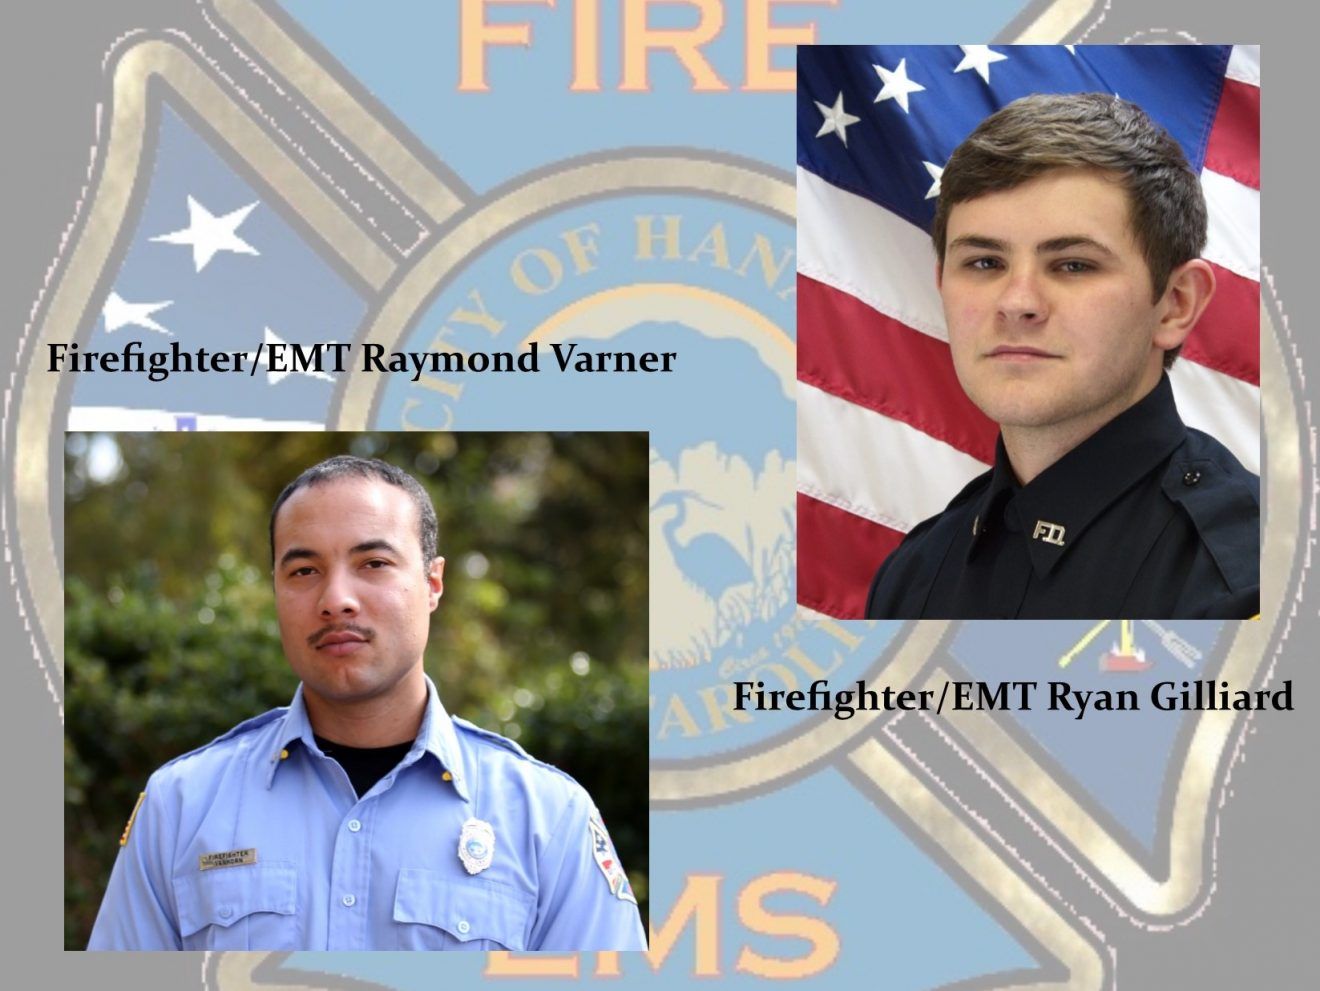 Two Hanahan Firefighters recently promoted to Firefighter